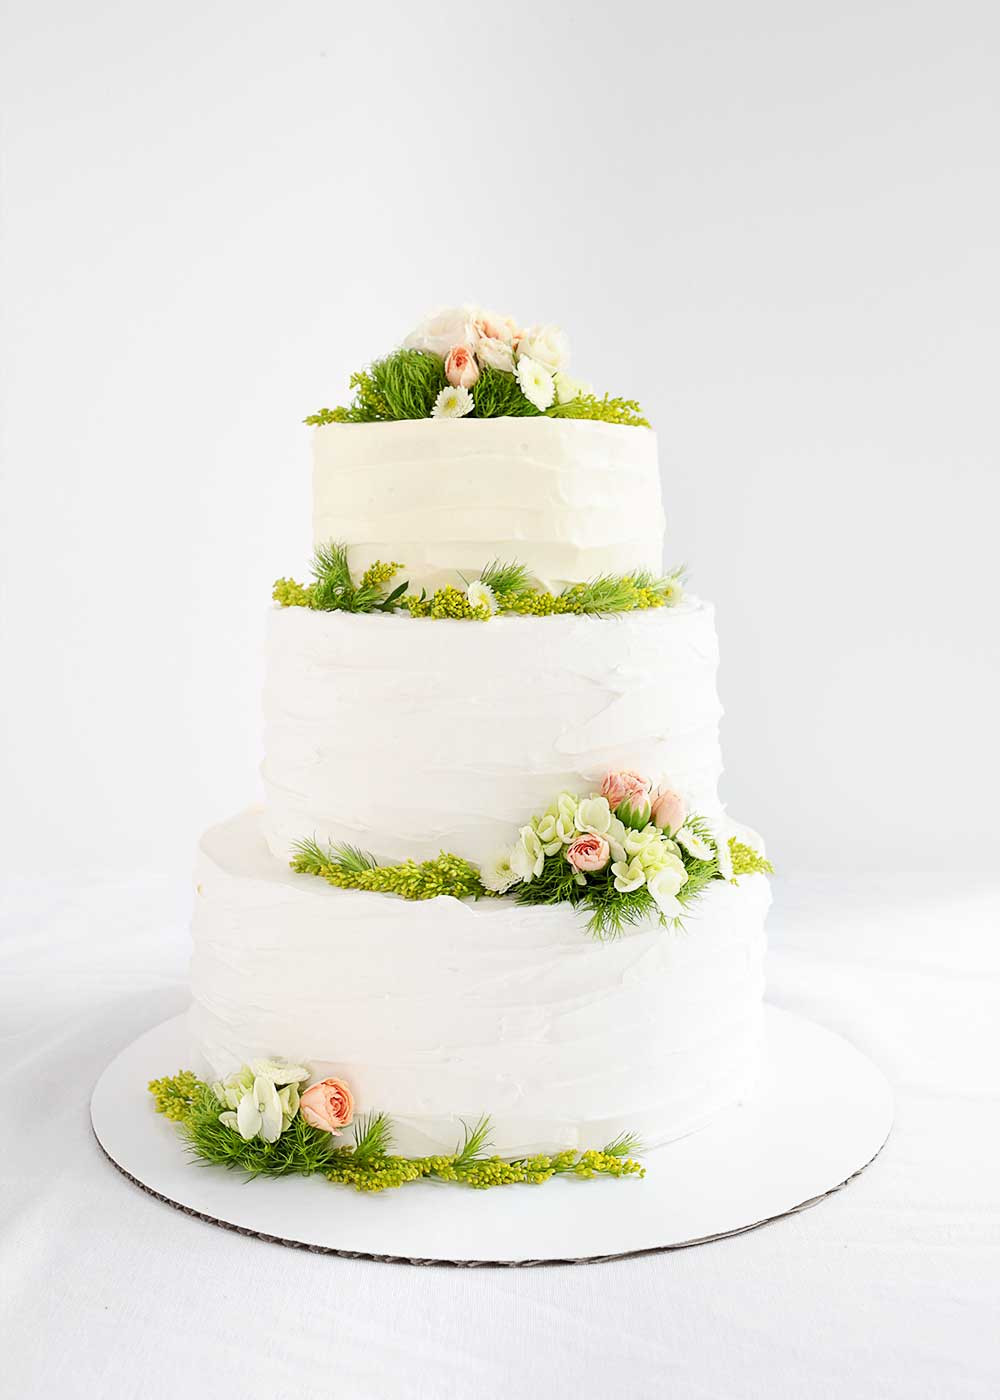 Best ideas about DIY Wedding Cake . Save or Pin DIY Wedding Cake The Faux Martha Now.